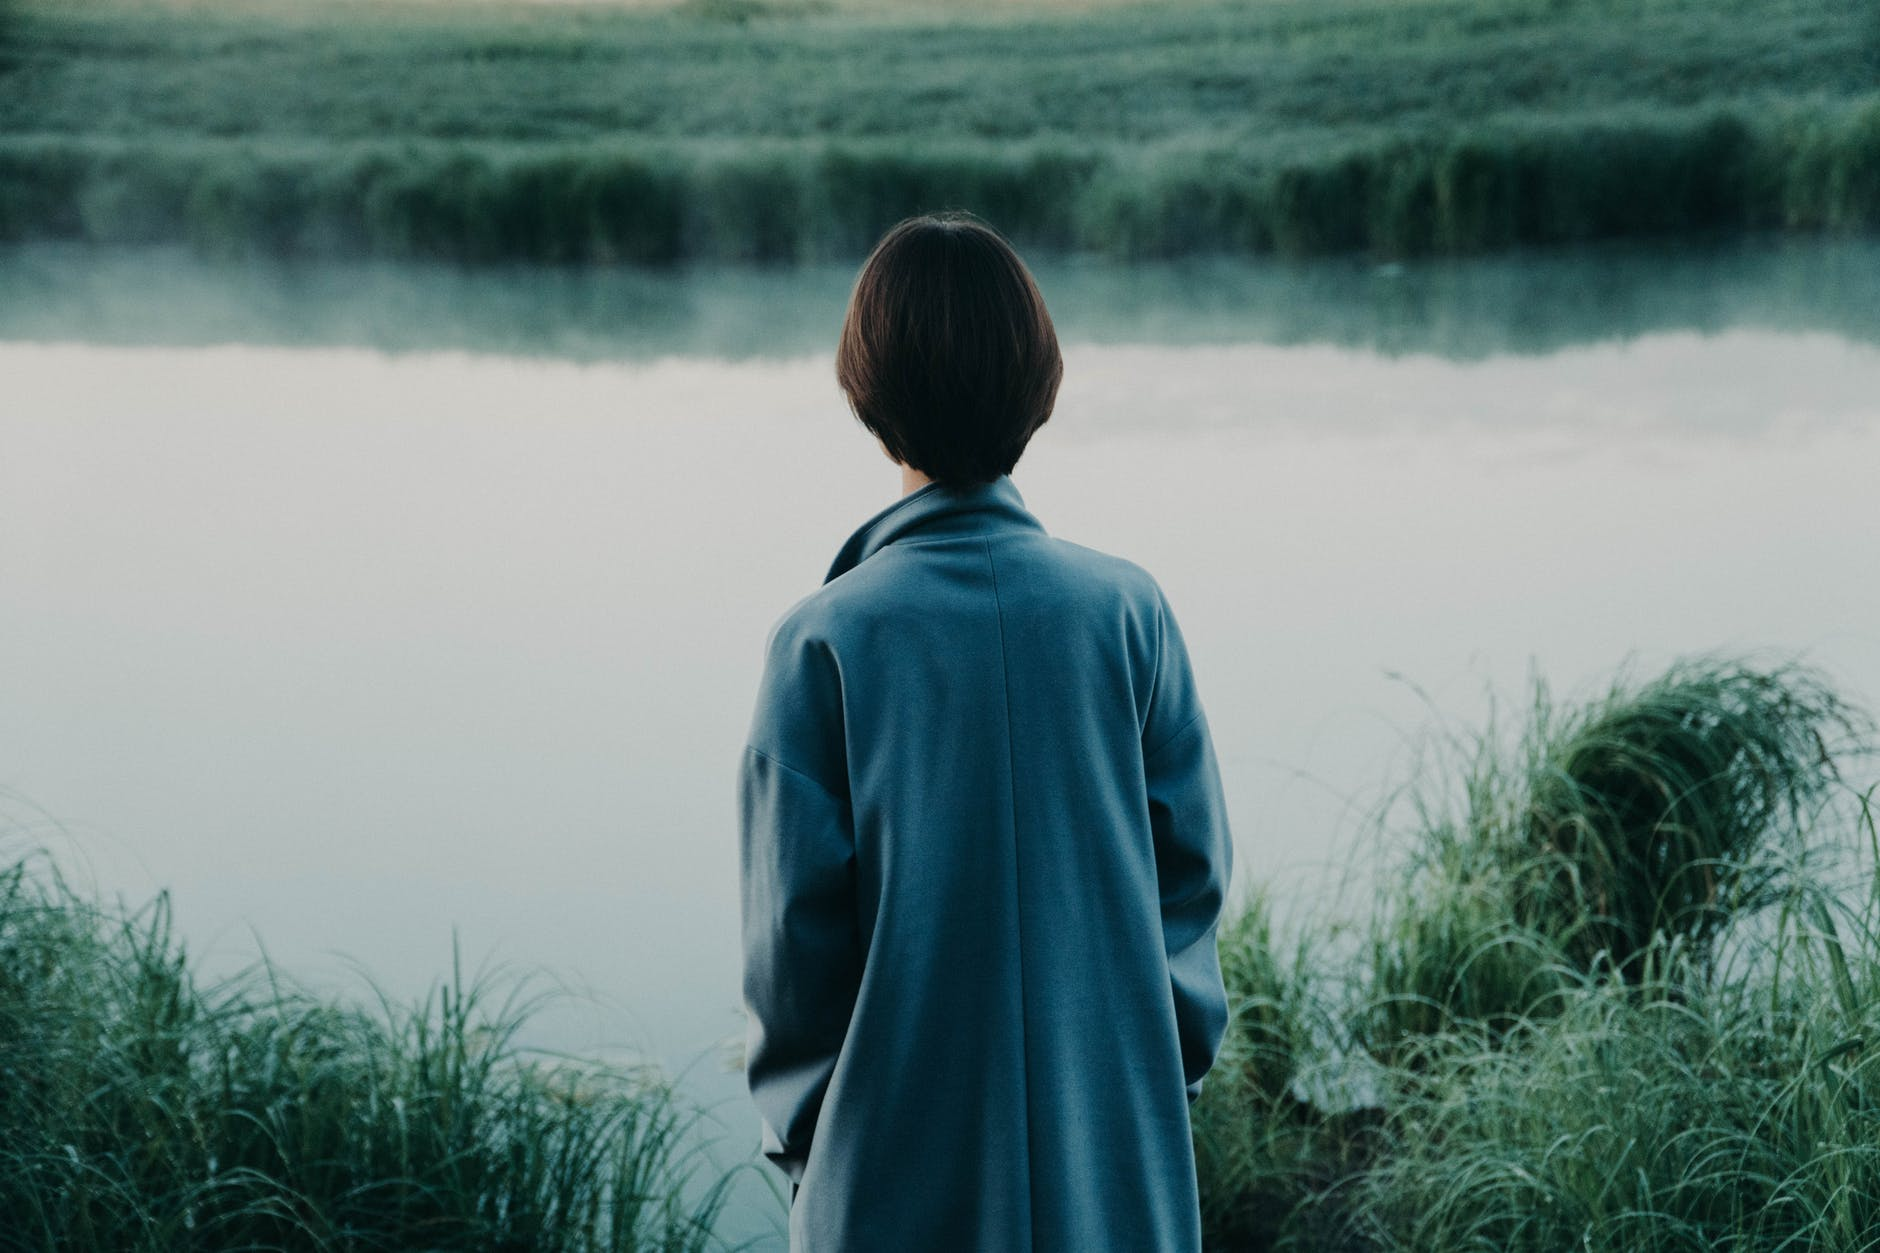 unrecognizable person contemplating pond and green grass